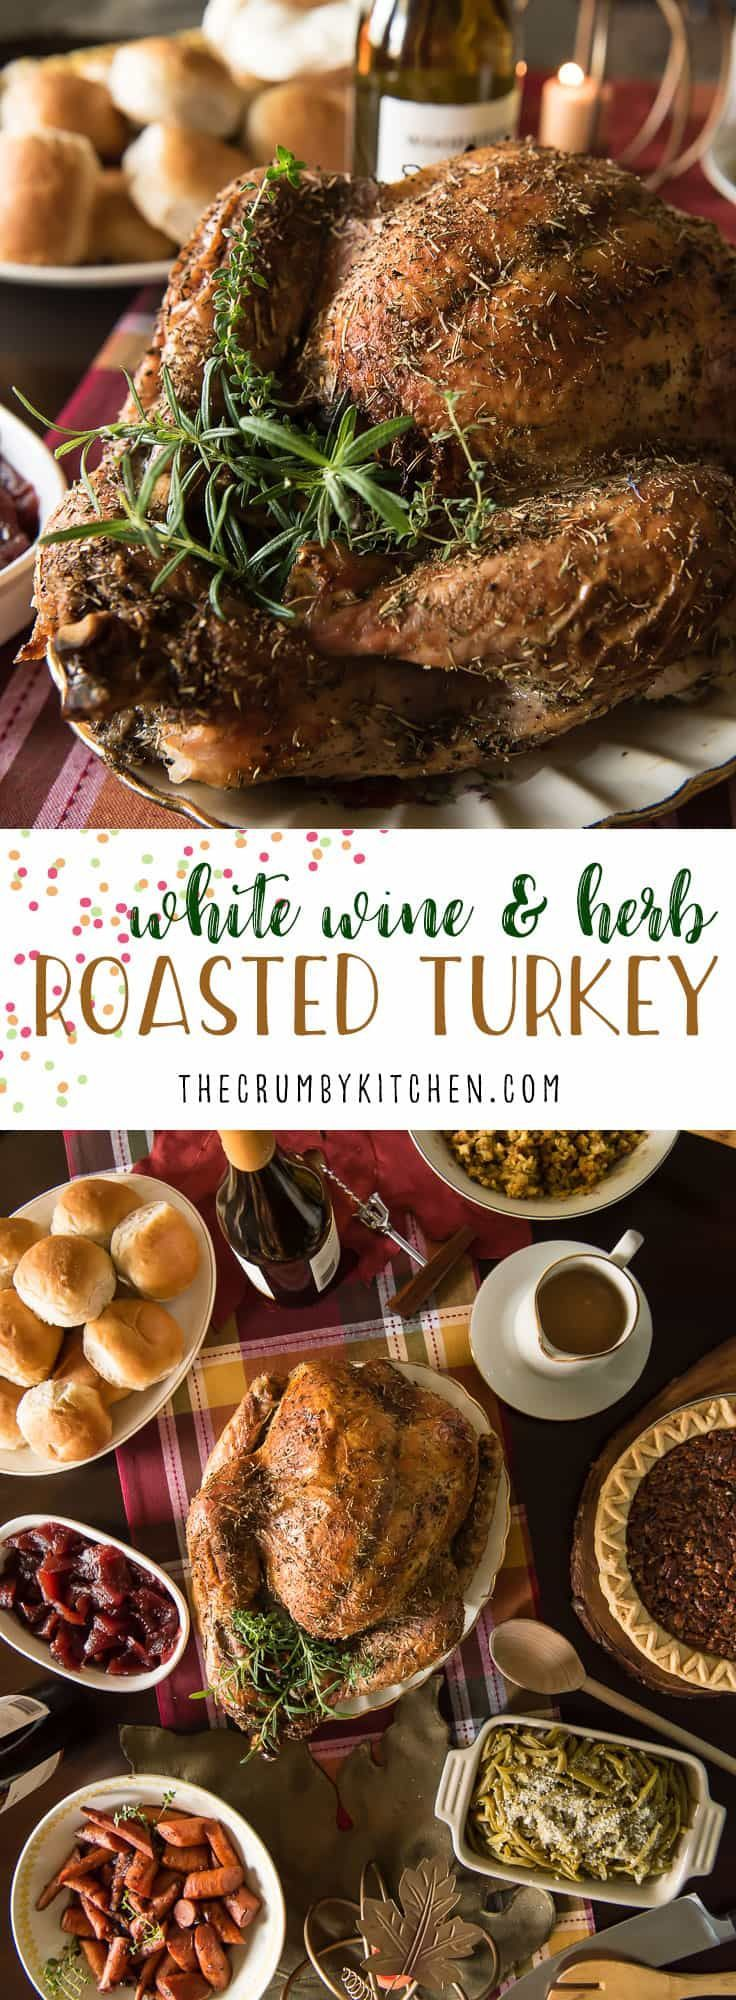 The juiciest holiday bird you'll ever eat! ThisWhite Wine and Herb Roasted Turkey is stuffed with fresh root veggies, bathed in white wine, and rubbed with a cocktail of herbs that is guaranteed to delight everyone at the table! #thanksgiving #turkey #recipe #holiday #recipes #whitewine #wine #herb #roastedturkey #christmas #meal